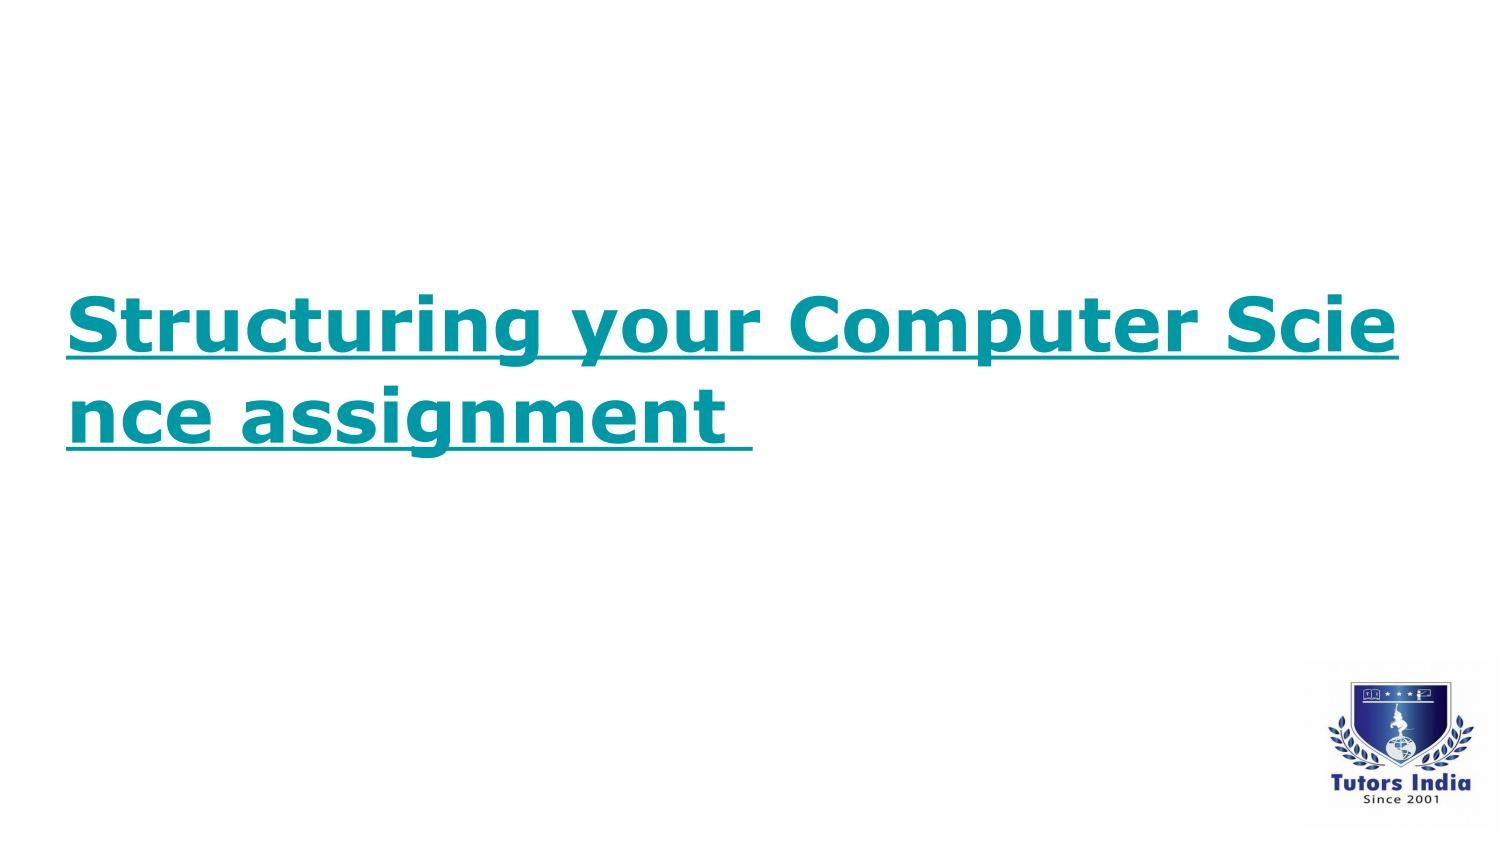 Structuring Your Computer Science Assignment  Assignment  Essay  Structuring Your Computer Science Assignment Dissertation Unitedkingdom  Phdtopic Phdproposal Phdthesis Phdlife Phdchat Tutorsindia Essay